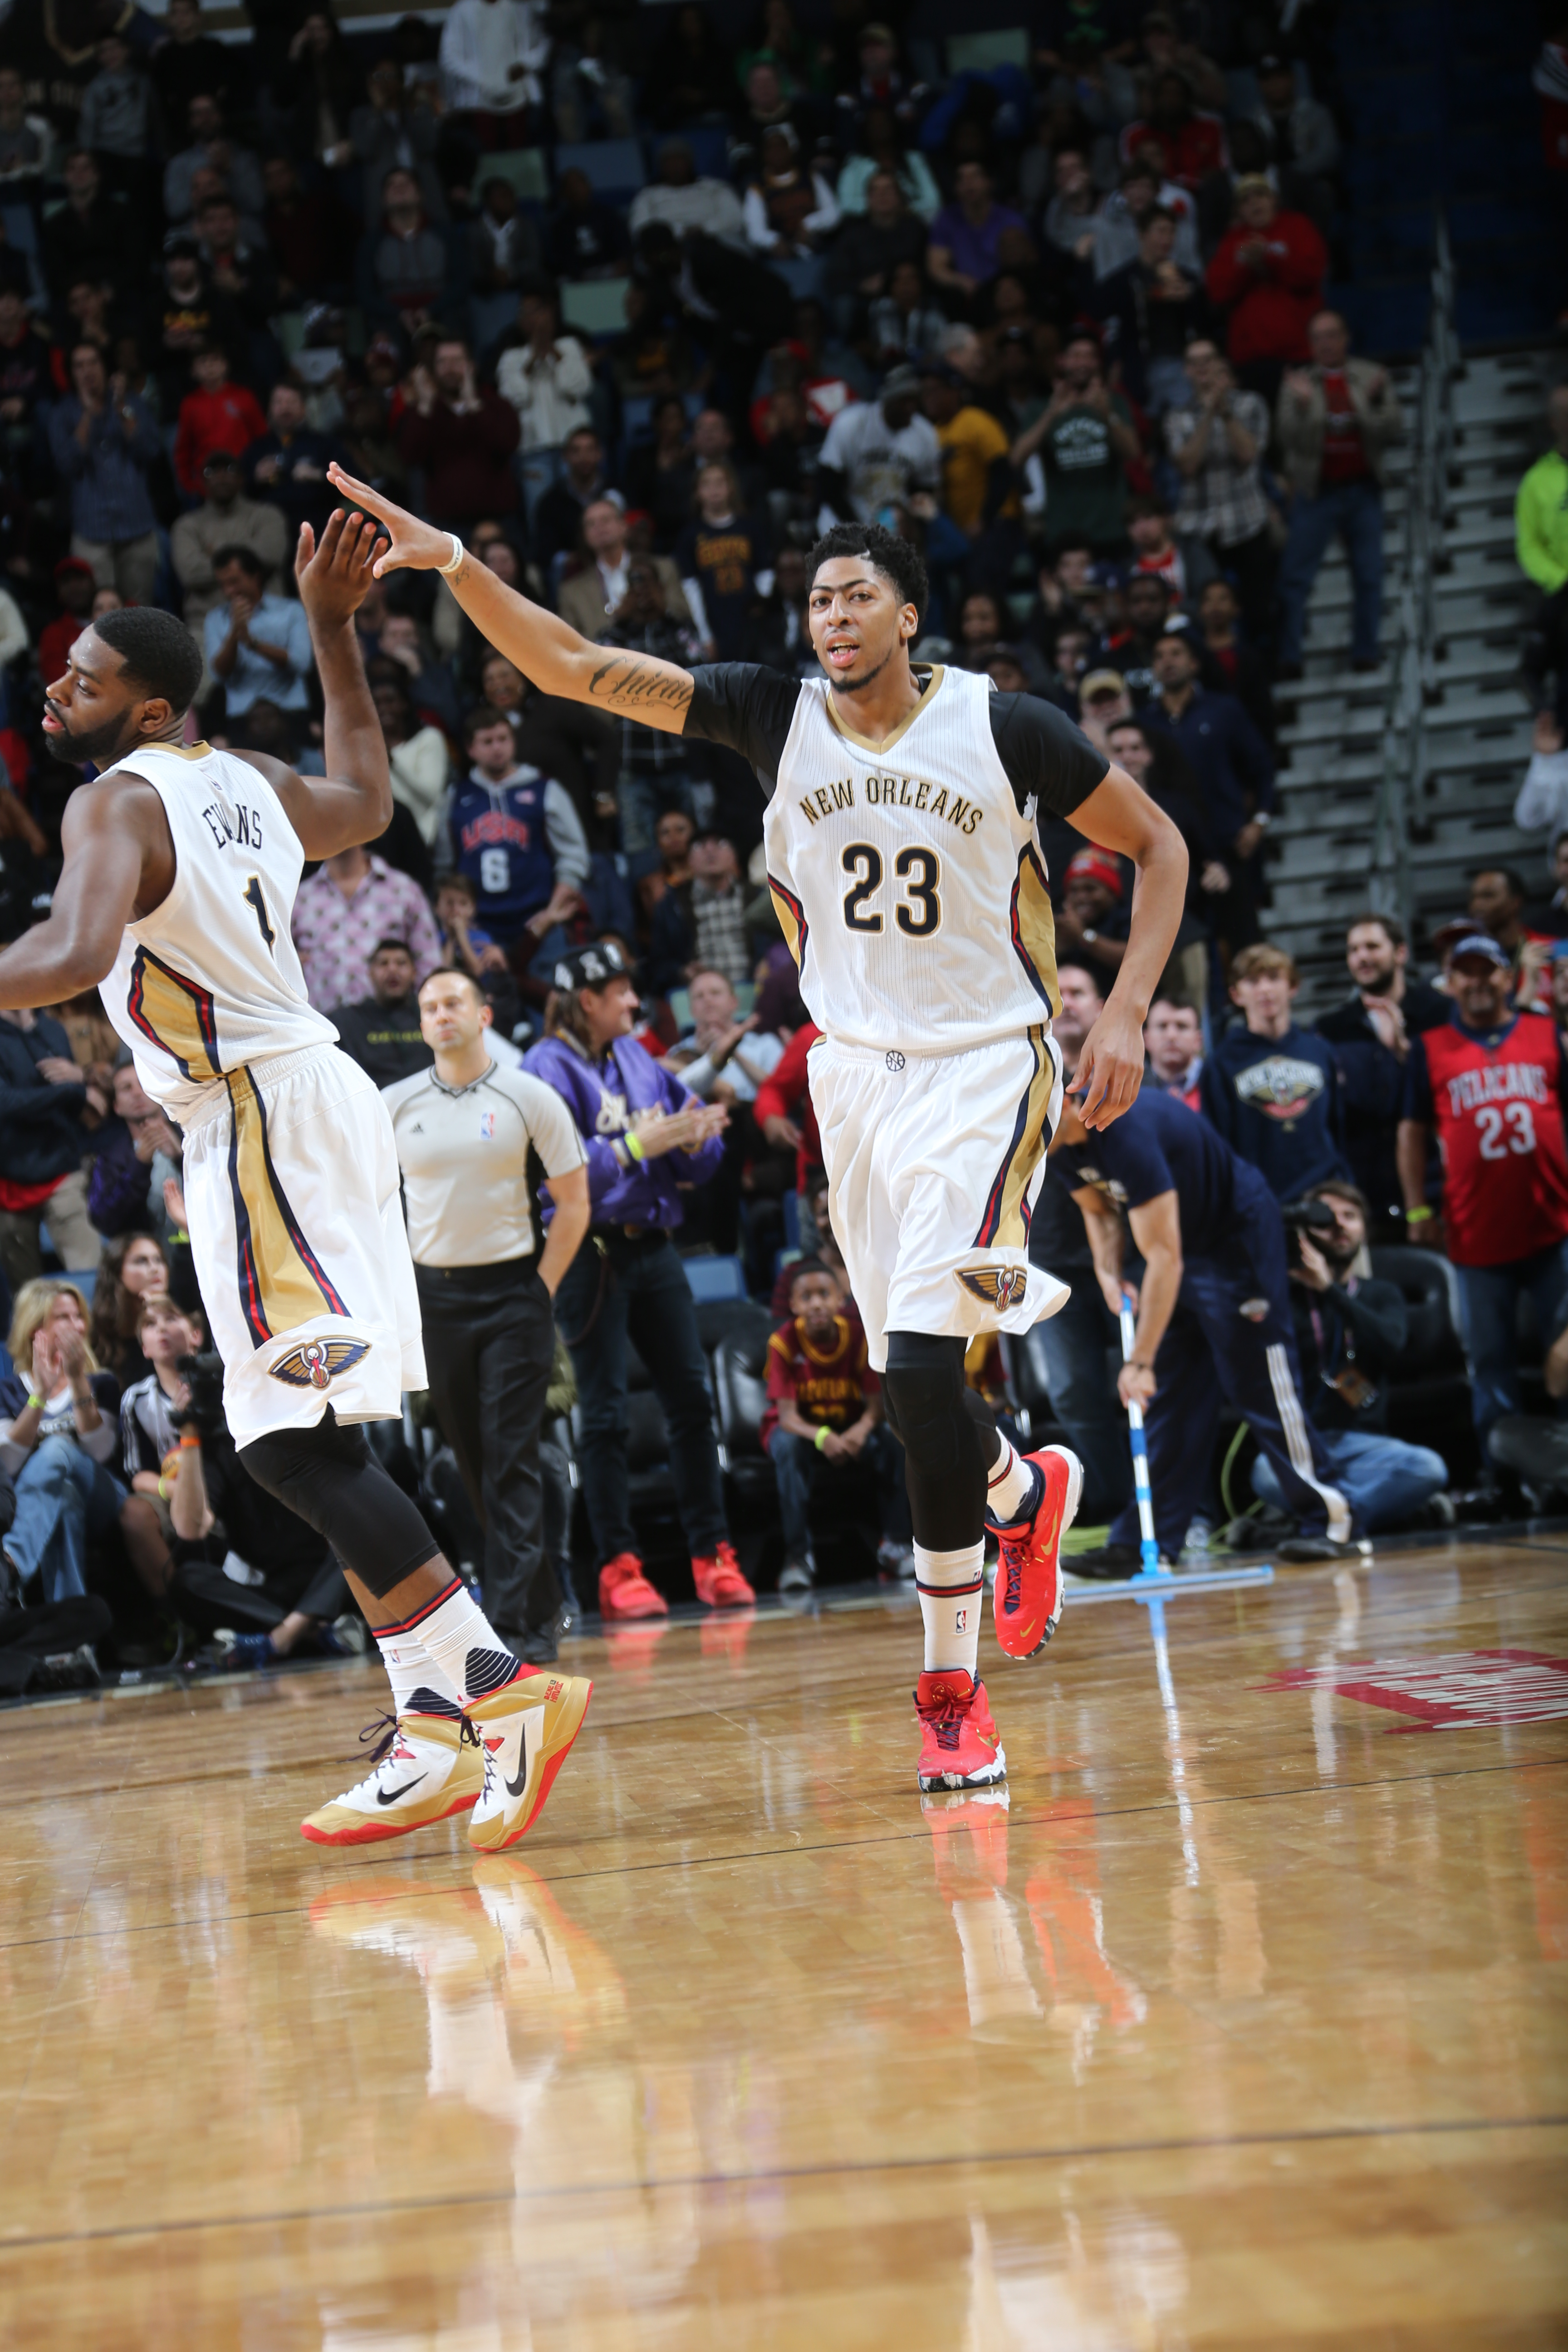 NEW ORLEANS, LA - DECEMBER 4:  Anthony Davis #23 of the New Orleans Pelicans celebrates with Tyreke Evans #1 of the New Orleans Pelicans during the game against the Cleveland Cavaliers on December 4, 2015 at Smoothie King Center in New Orleans, Louisiana.